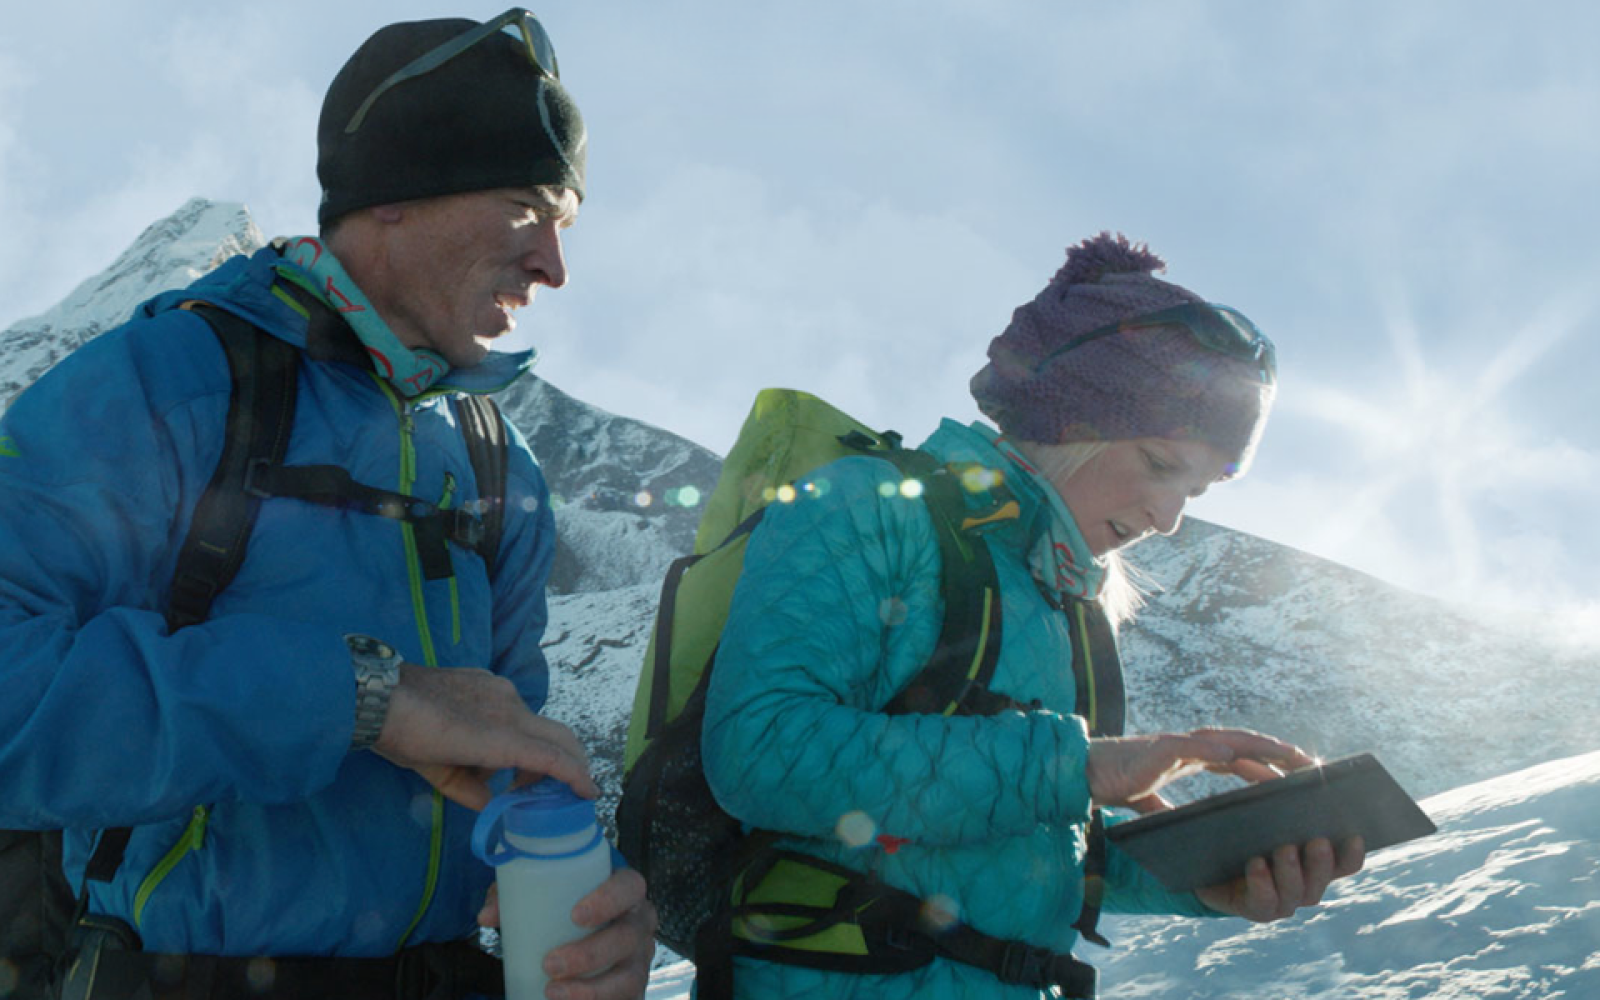 Apple takes Your Verse iPad campaign to new heights with mountaineering feature